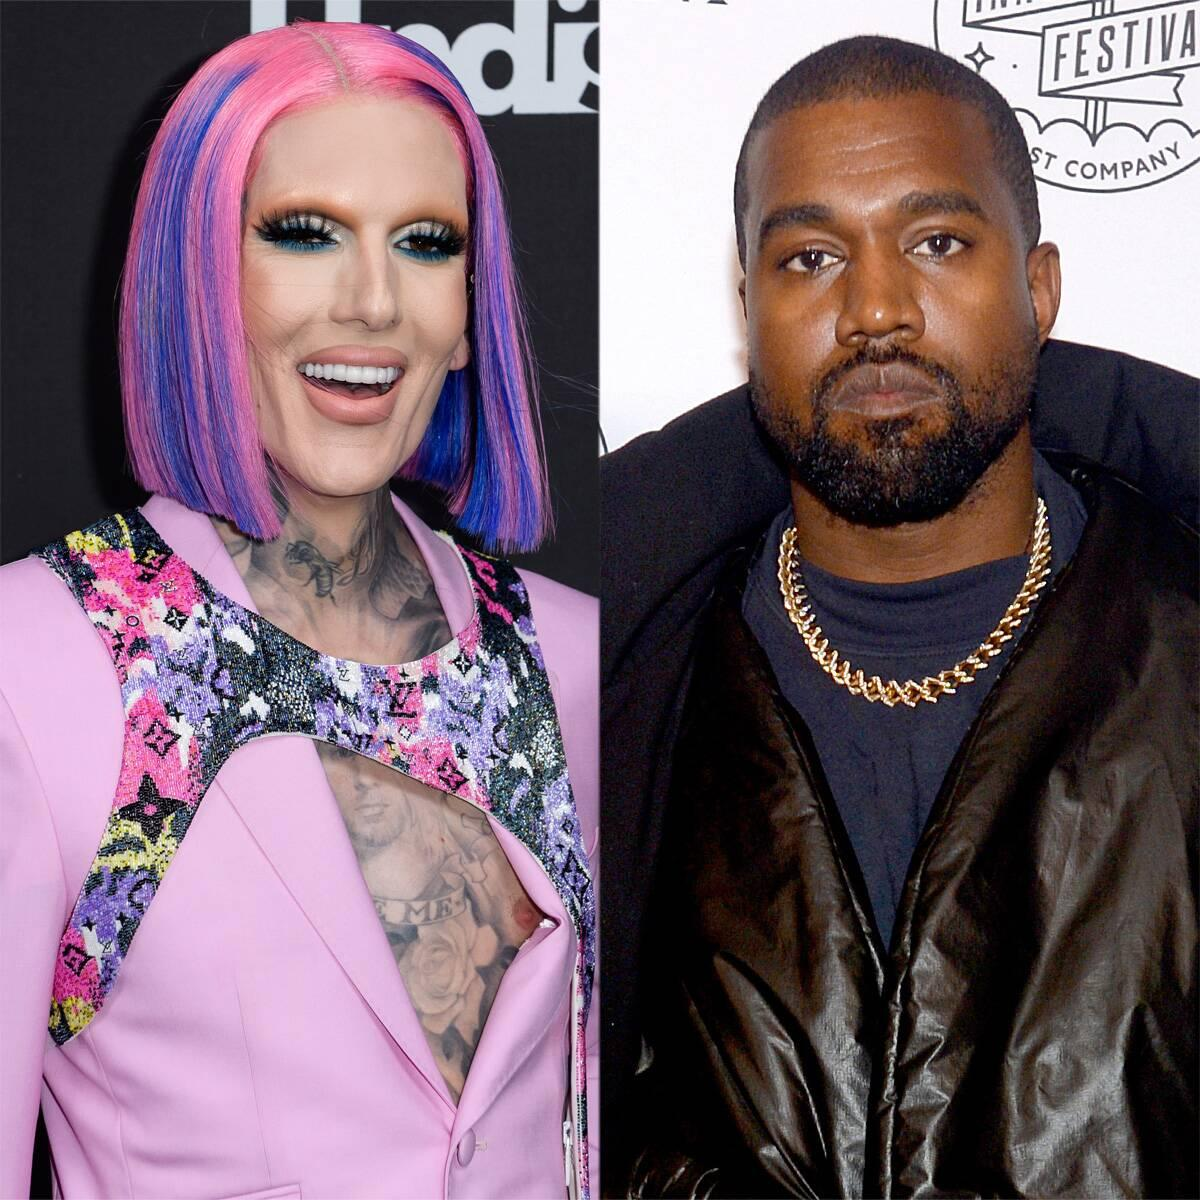 No, Those Rumors About Kanye West and Jeffree Star Aren't True